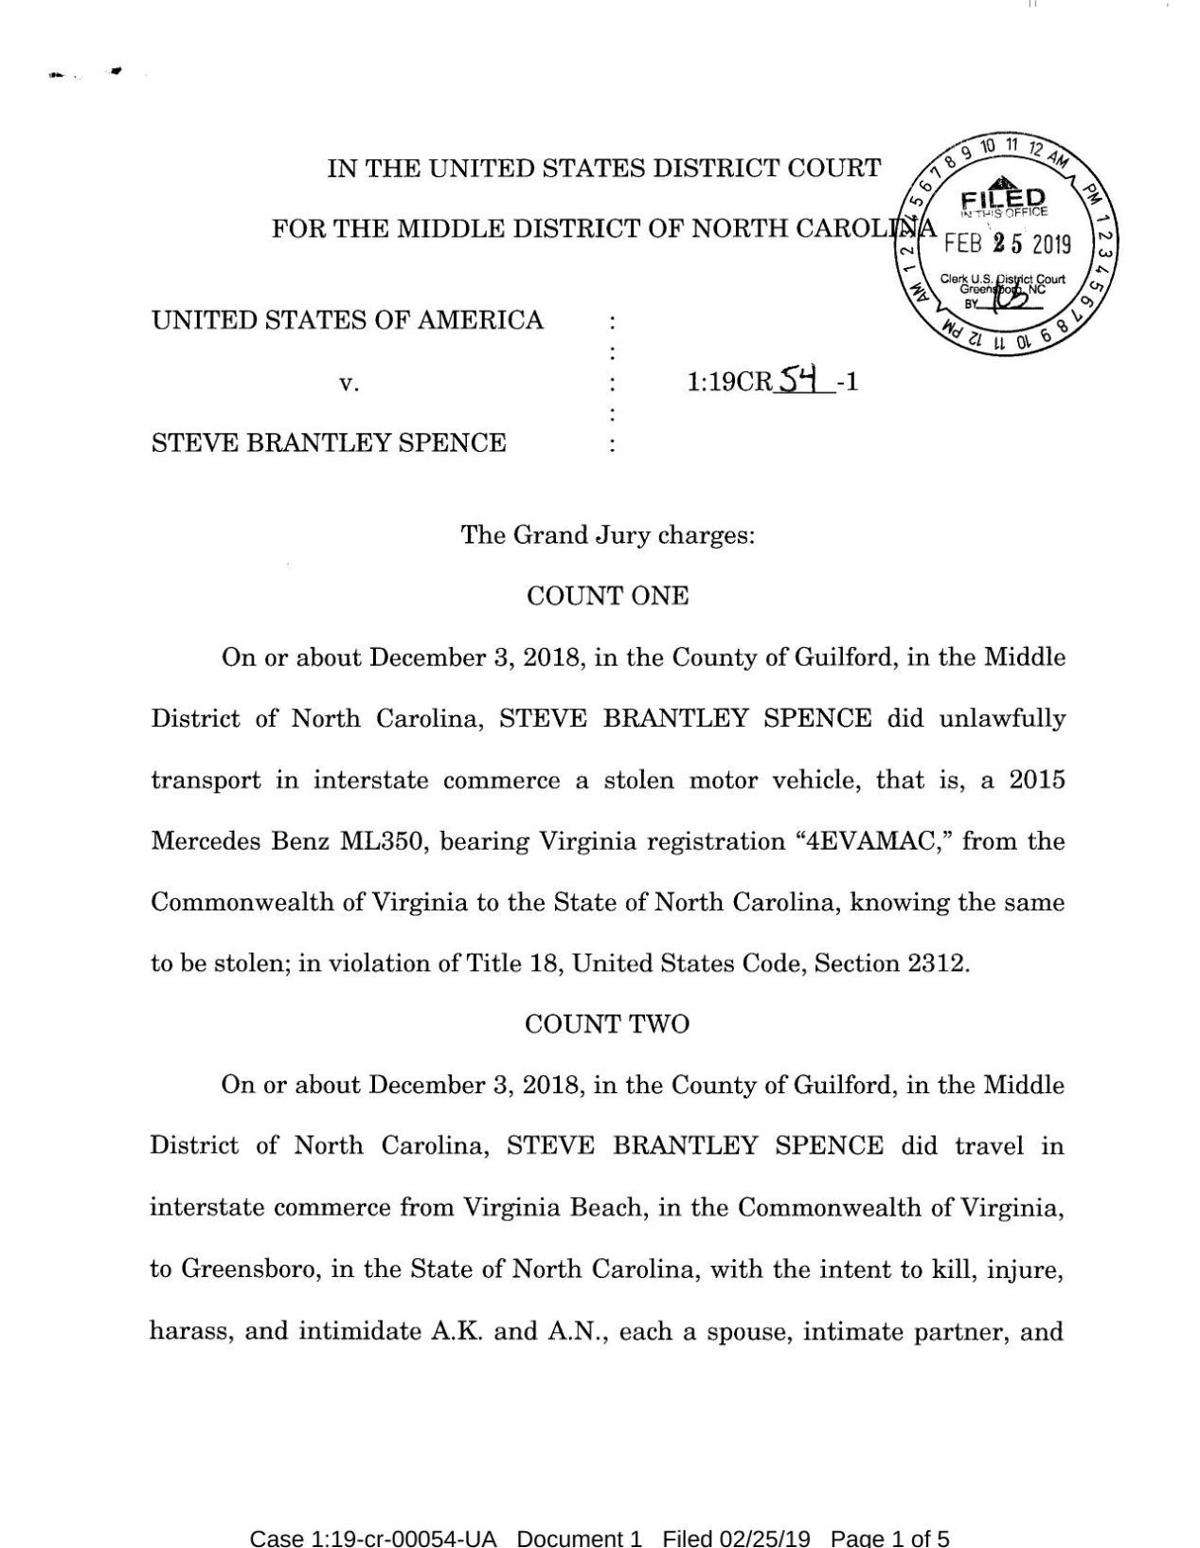 READ: Indictment against Spence